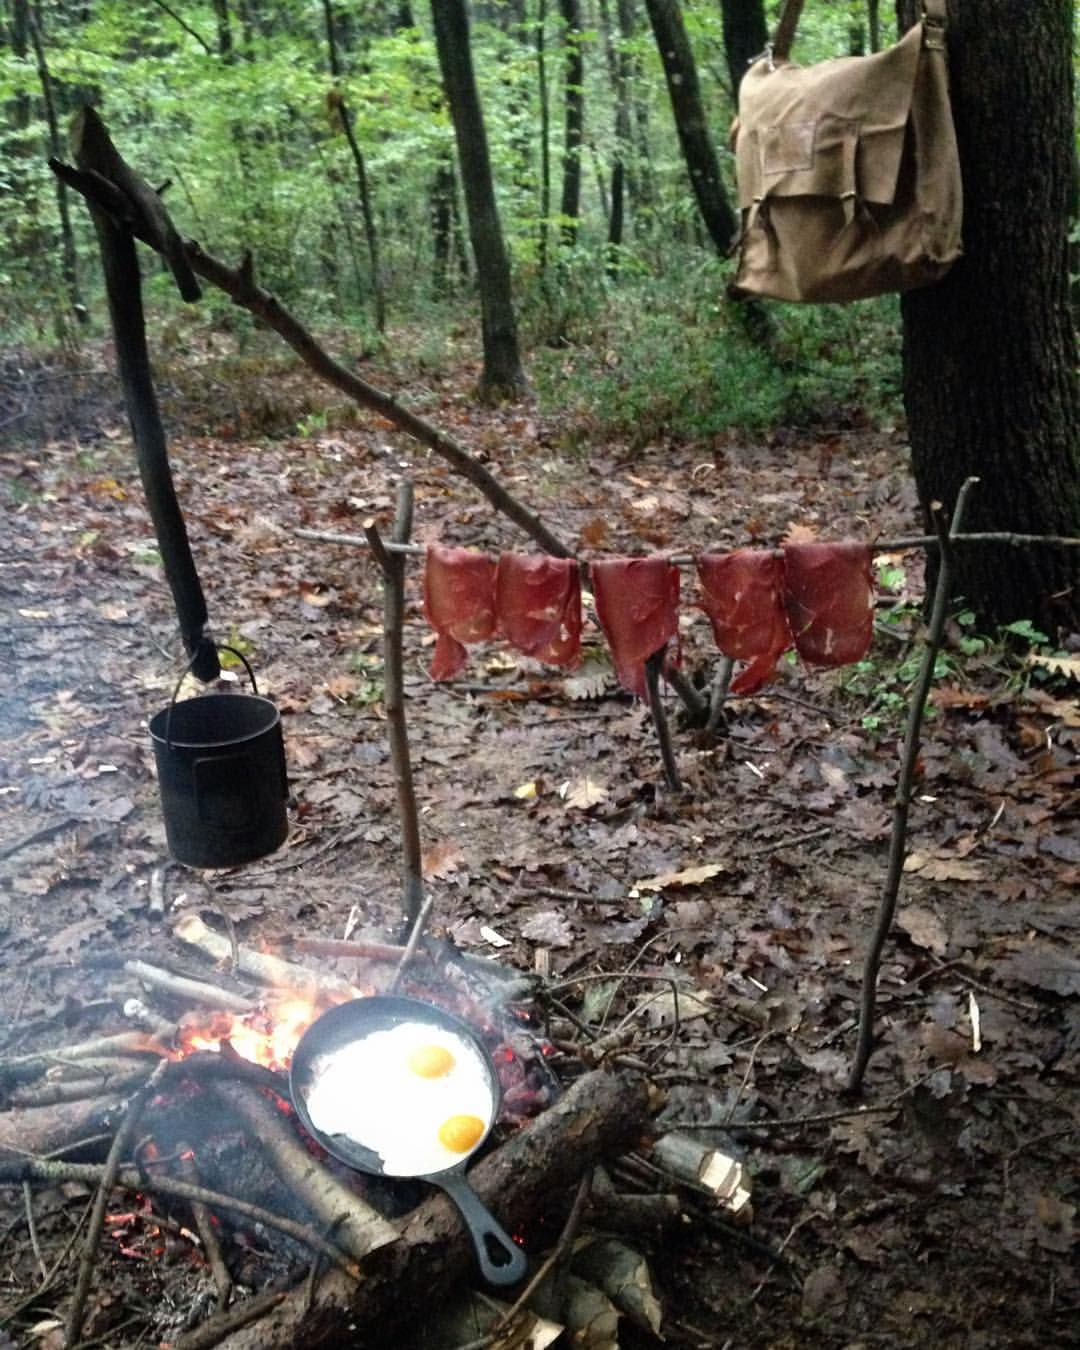 Pin by Dan Bunch on Bushbliss   Survival food, Outdoor ...